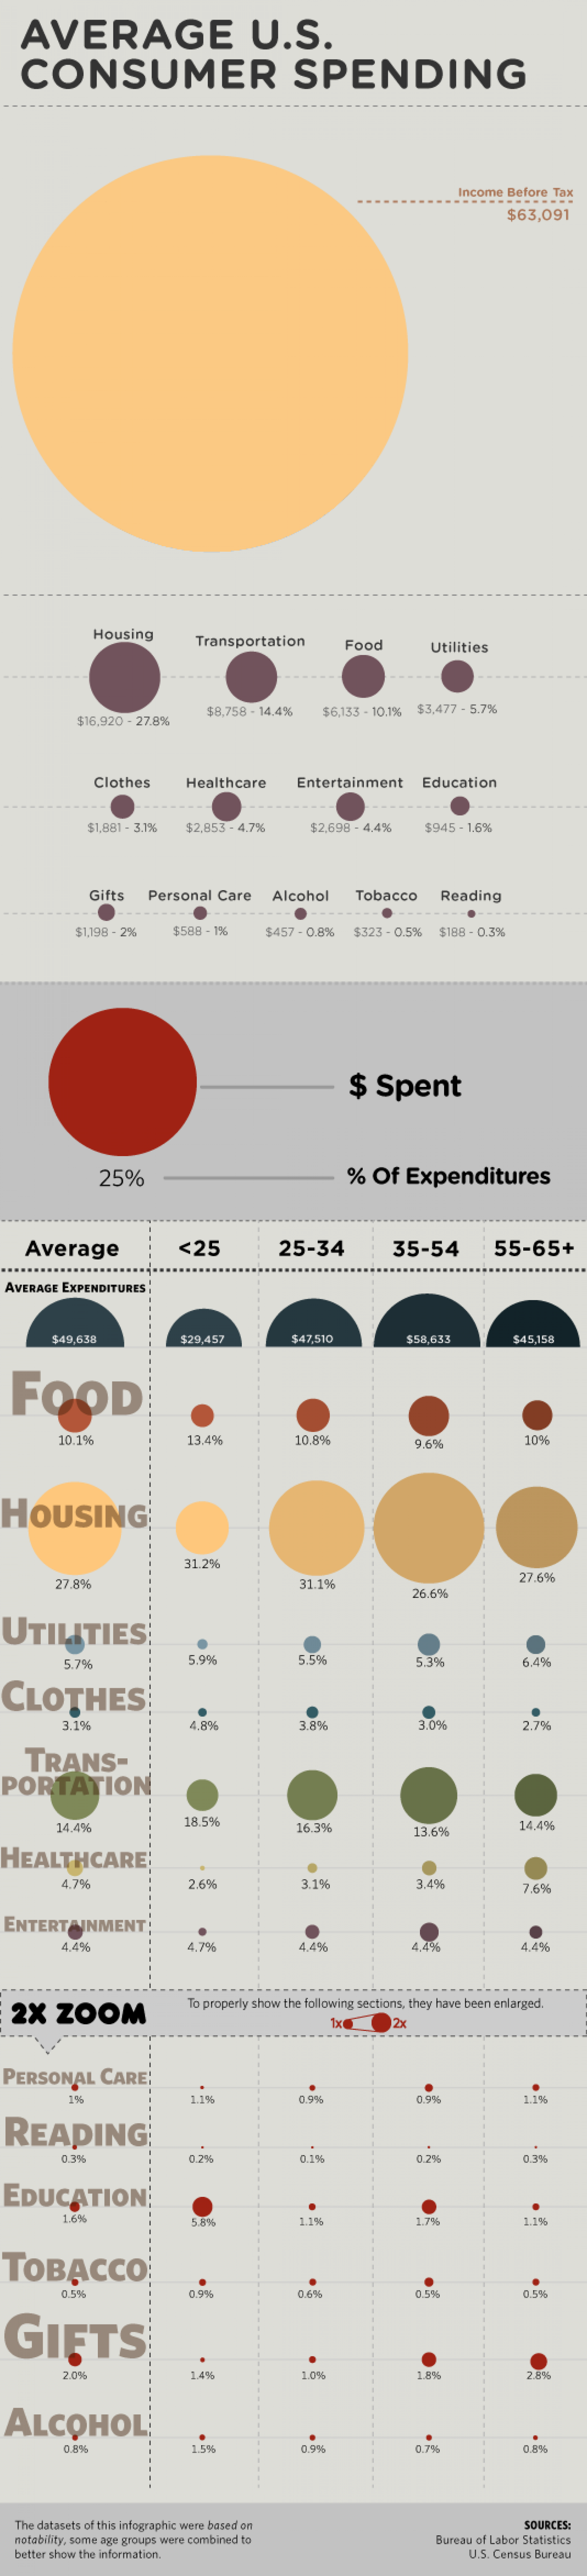 What's Up with U.S. Consumer Spending?  Infographic